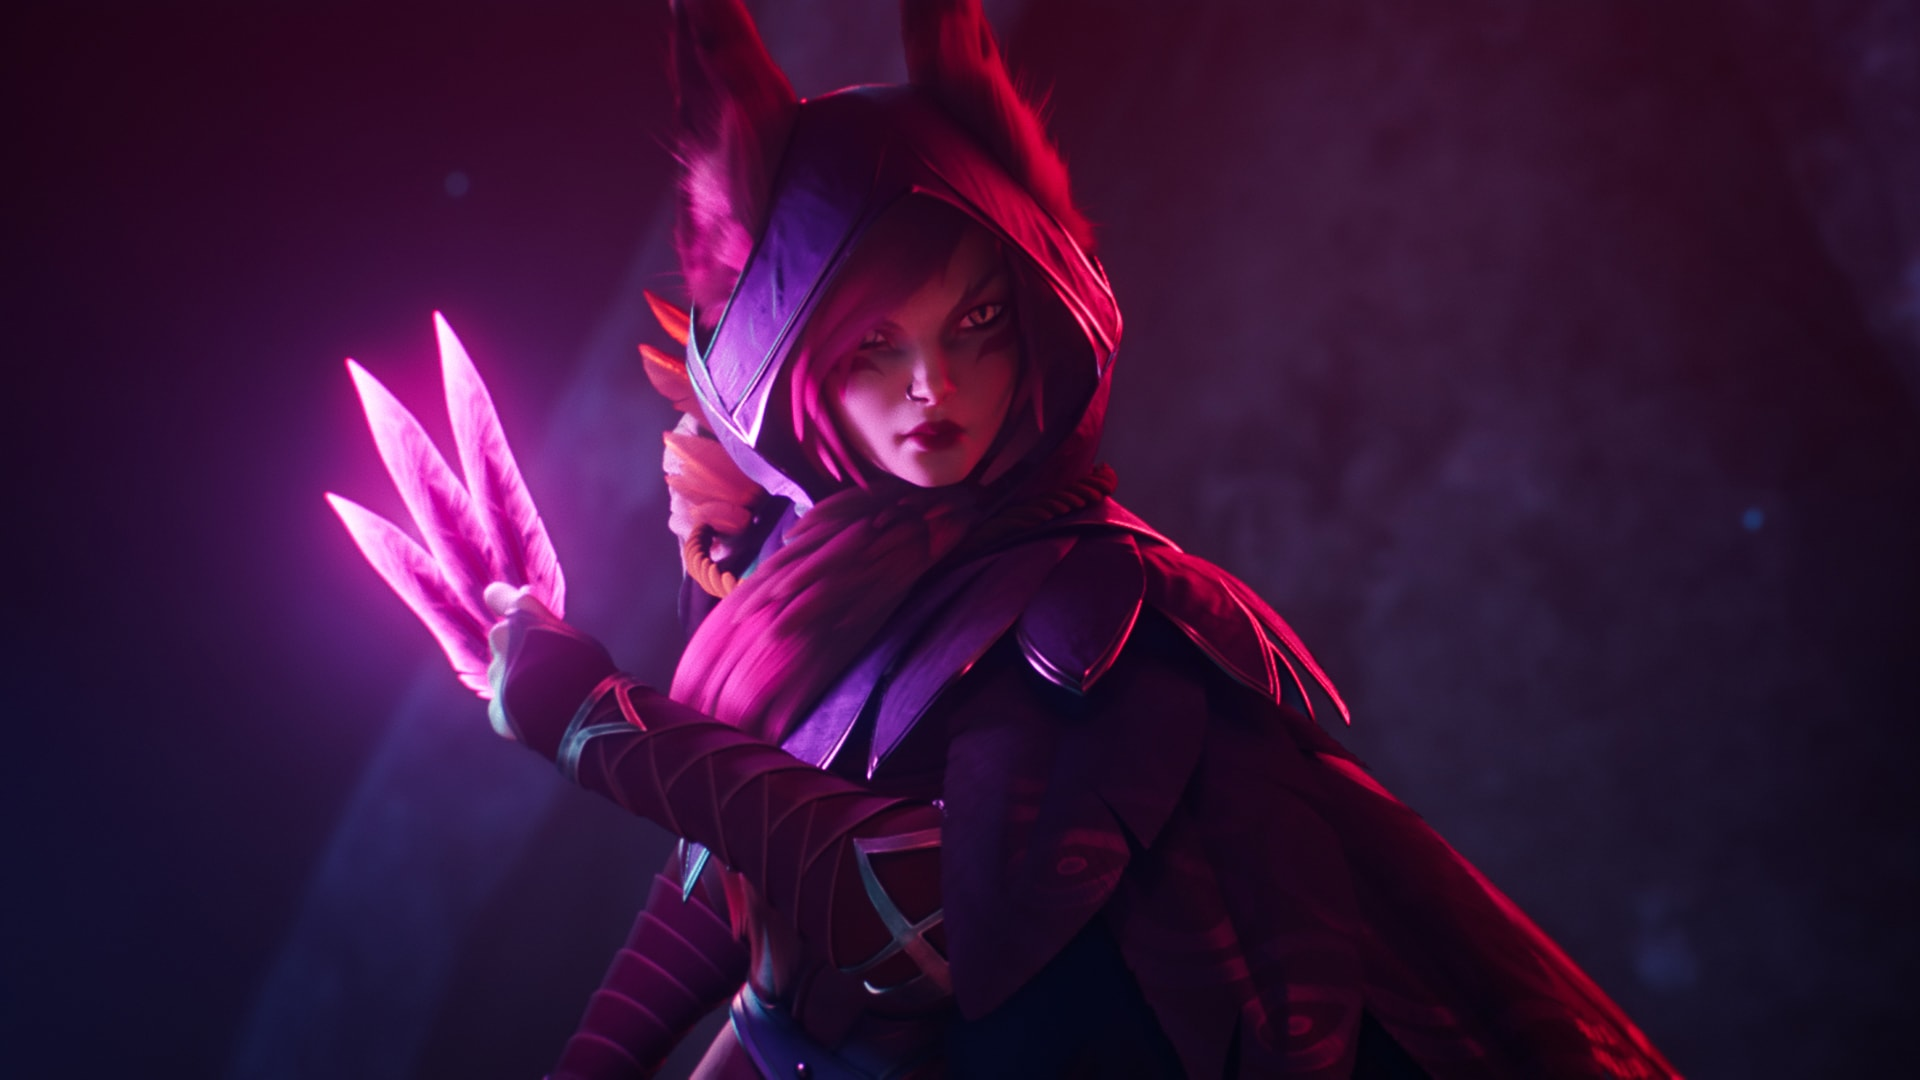 Xayah wallpaper